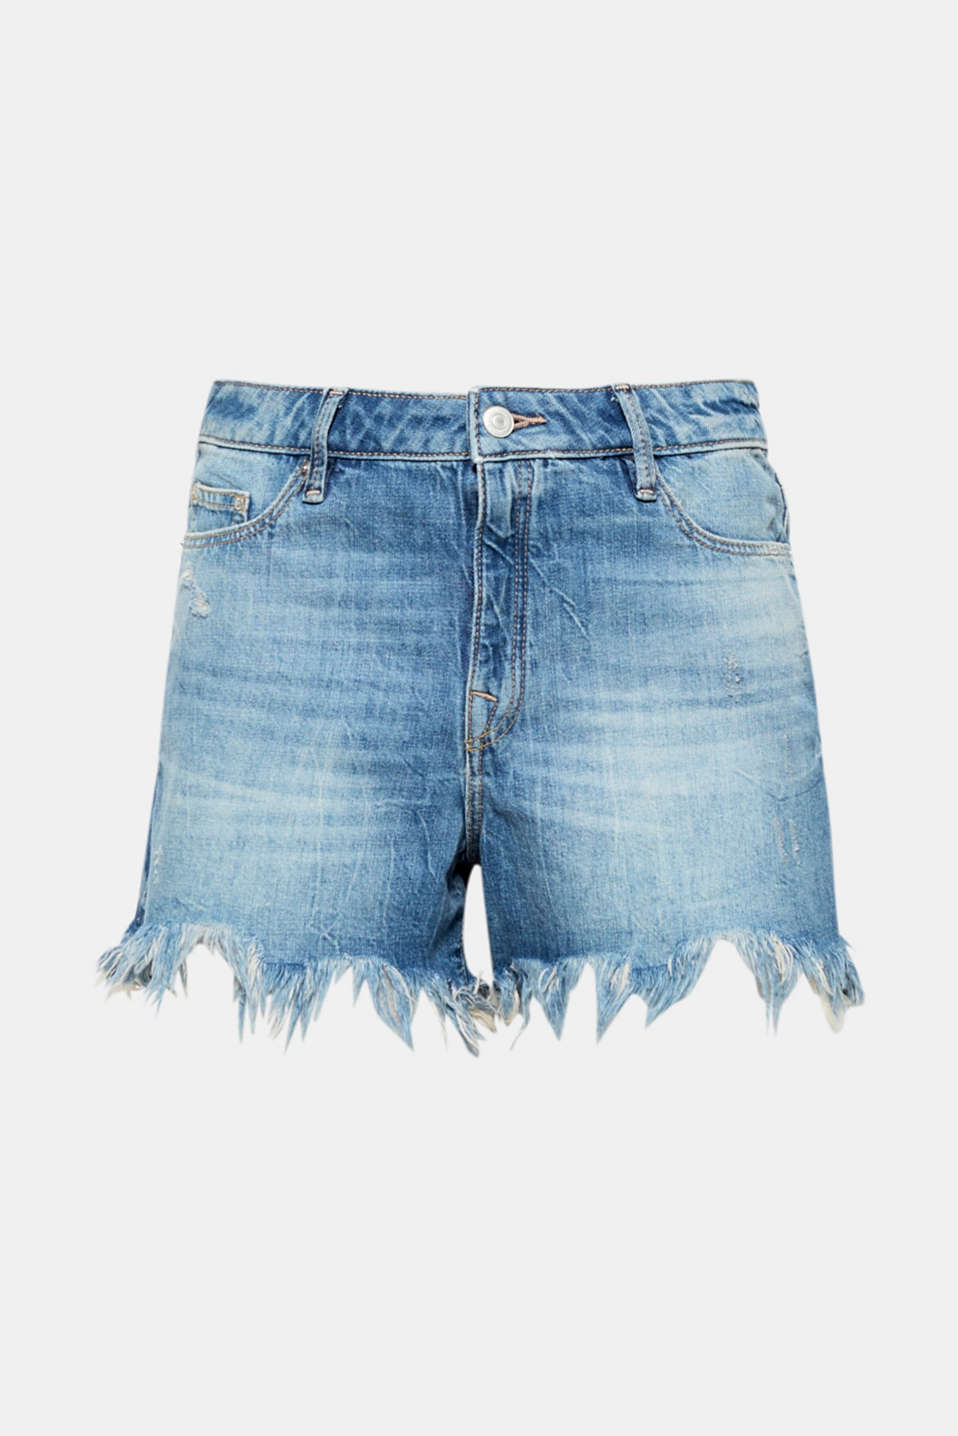 Must-have piece: These denim shorts are super casual thanks to the bold garment-washed effects and the fray hems.